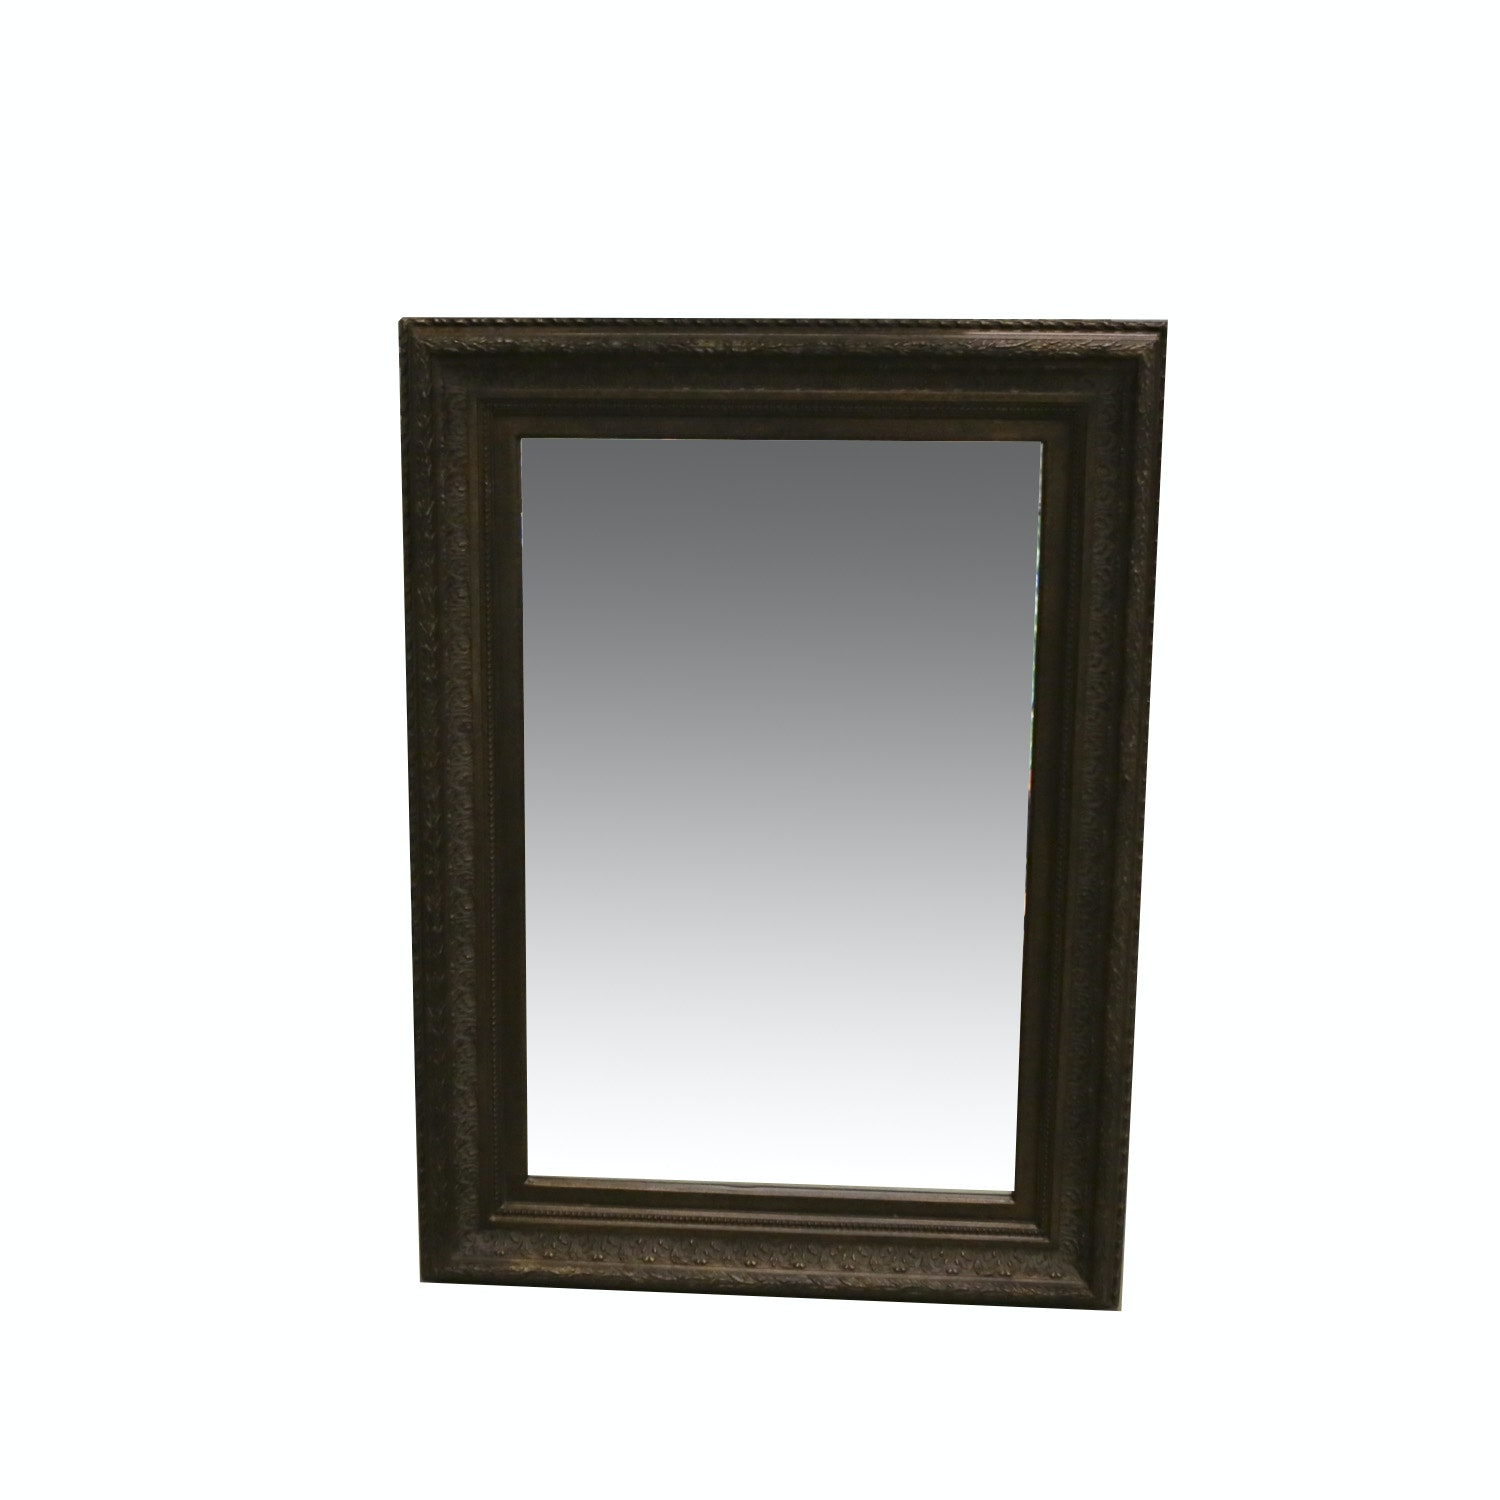 Wall Mirror With Decorative Frame